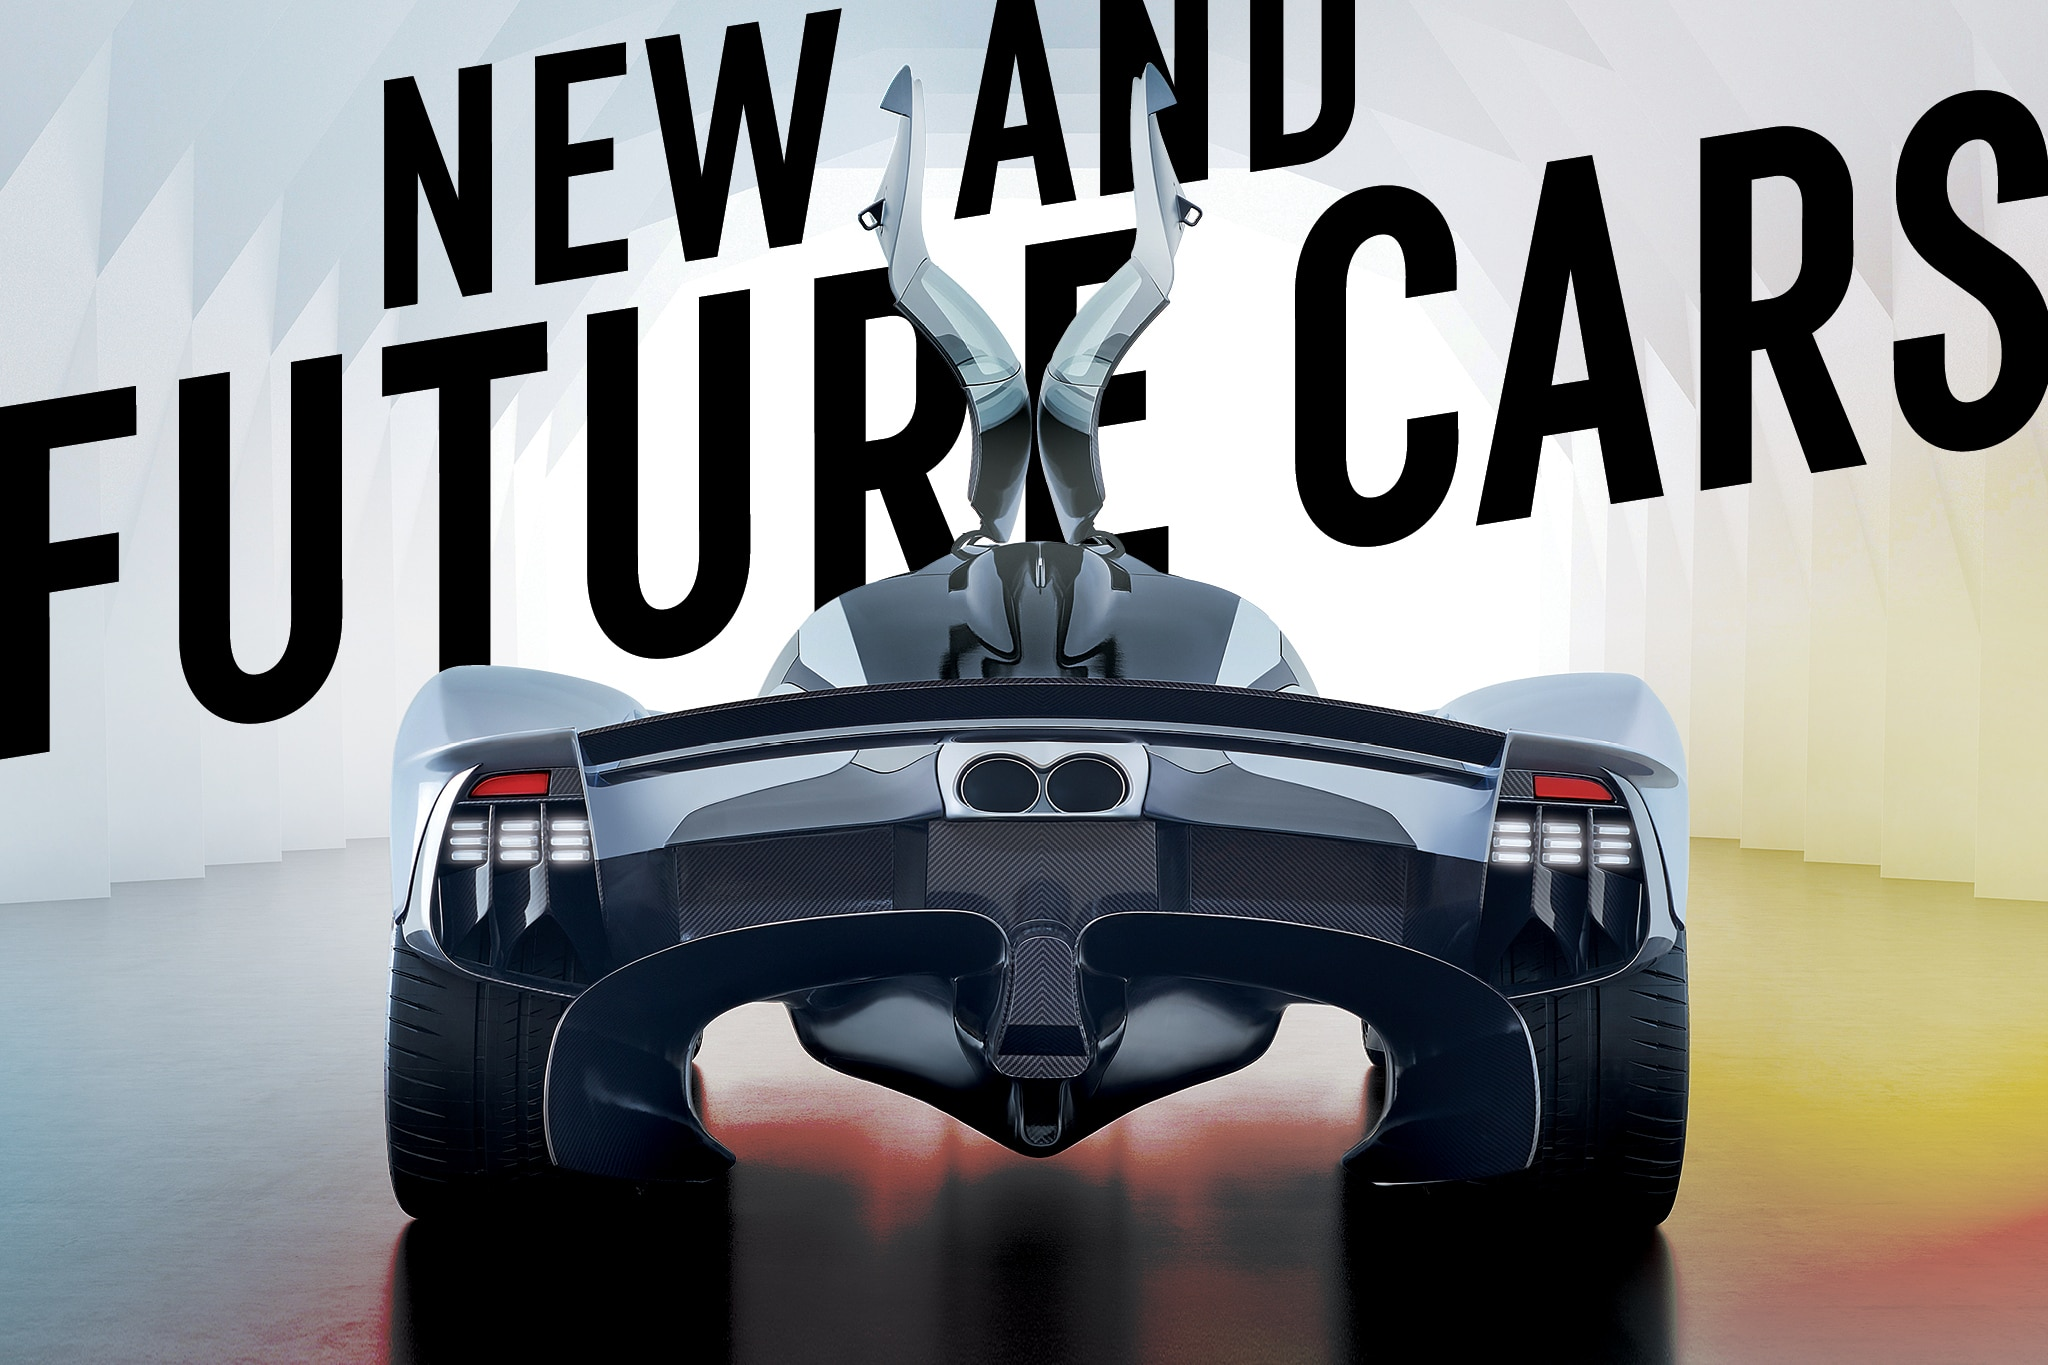 NewandFutureCars Header